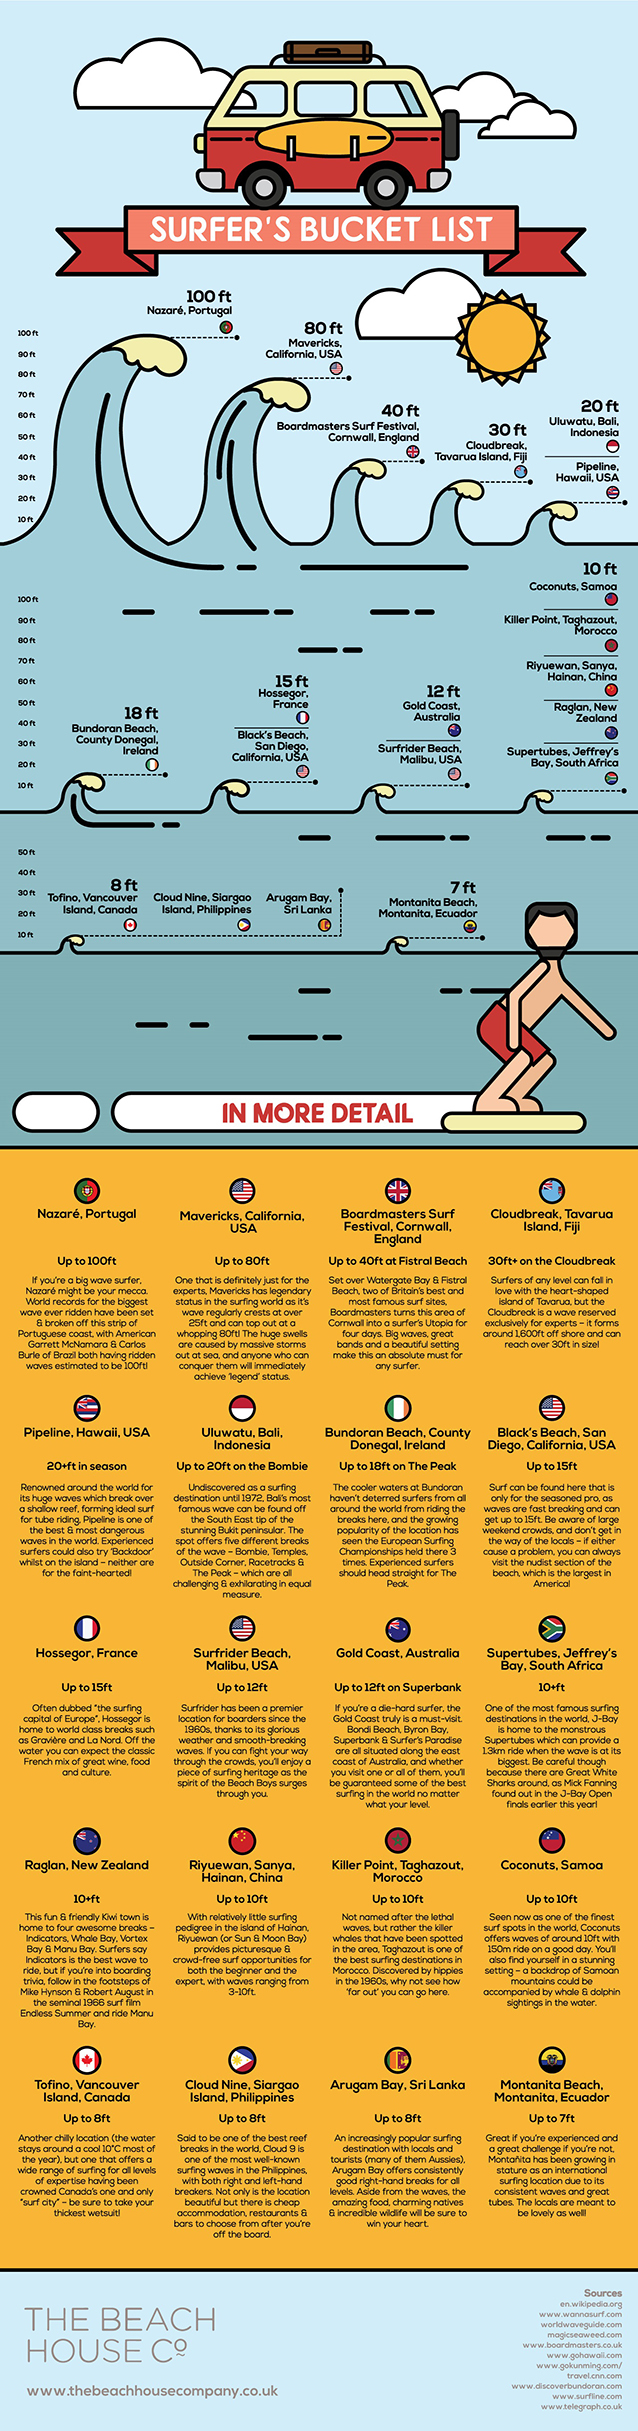 Le onde più alte al mondo secondo l'infografica di The Beach House Company.